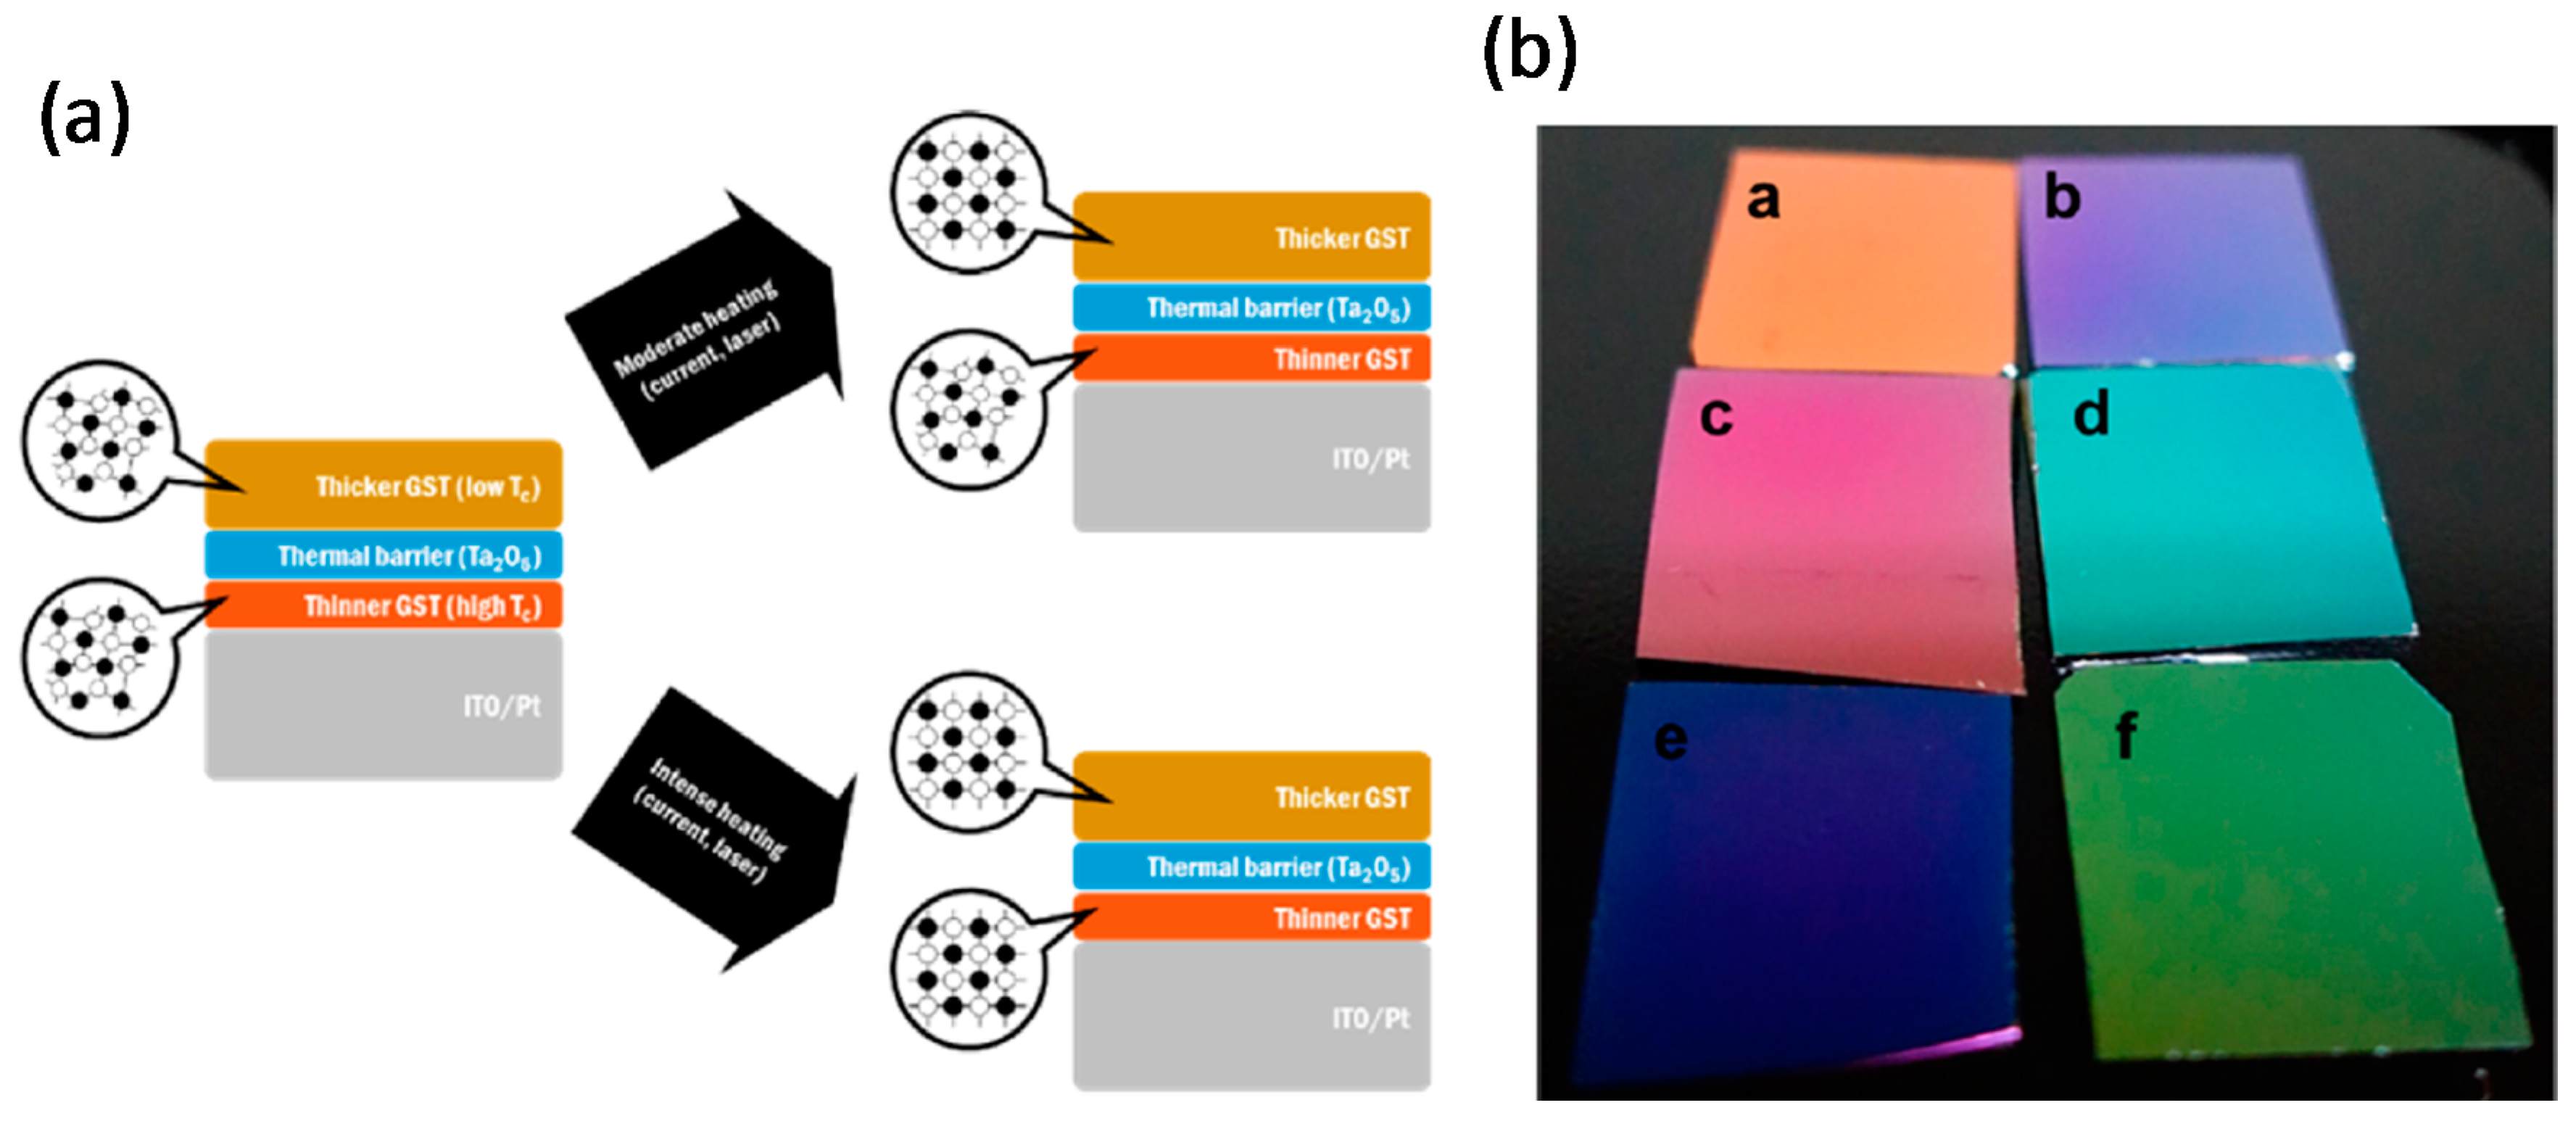 Materials Free Full Text Metasurfaces Based On Phase Change Transmissive Film 8211 Working 10 01046 G009a